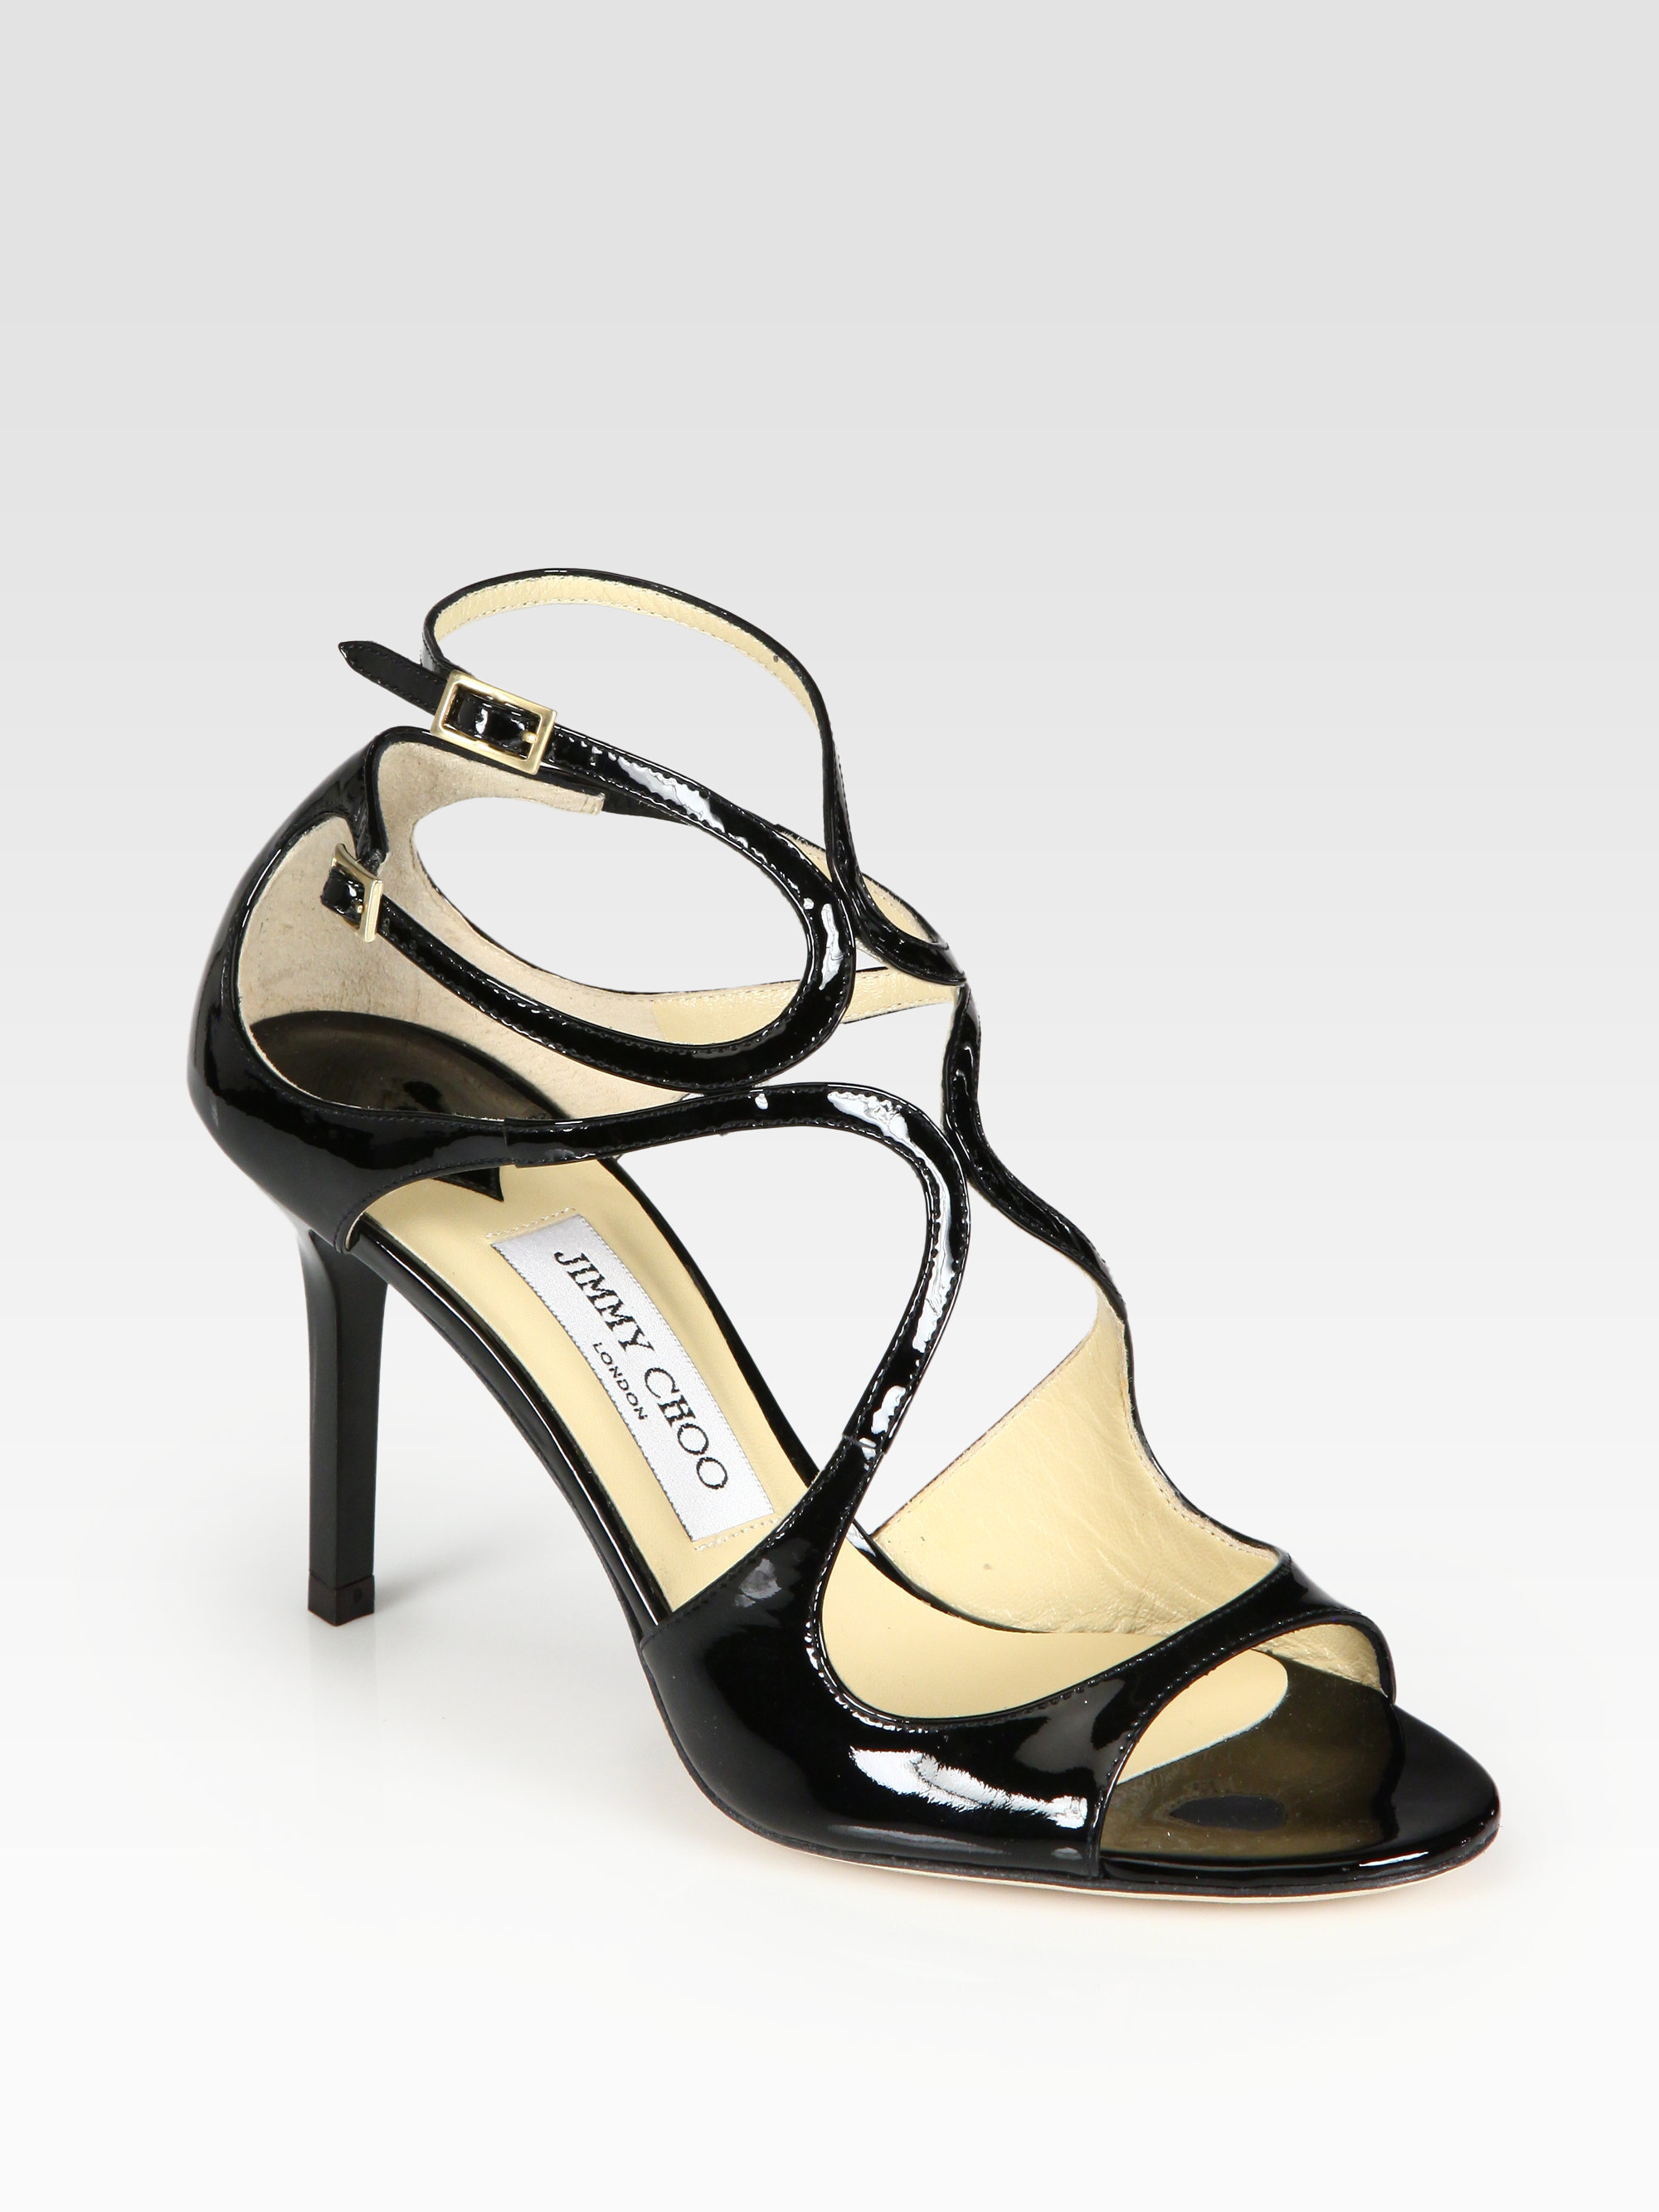 Lyst Jimmy Choo Ivette Strappy Patent Leather Sandals In